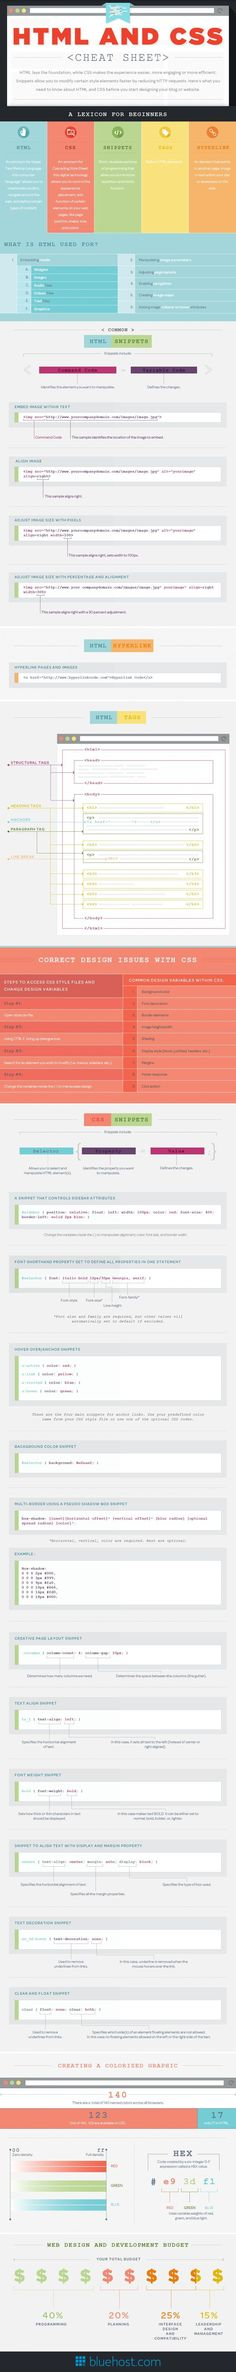 HTML and CSS Cheat Sheet